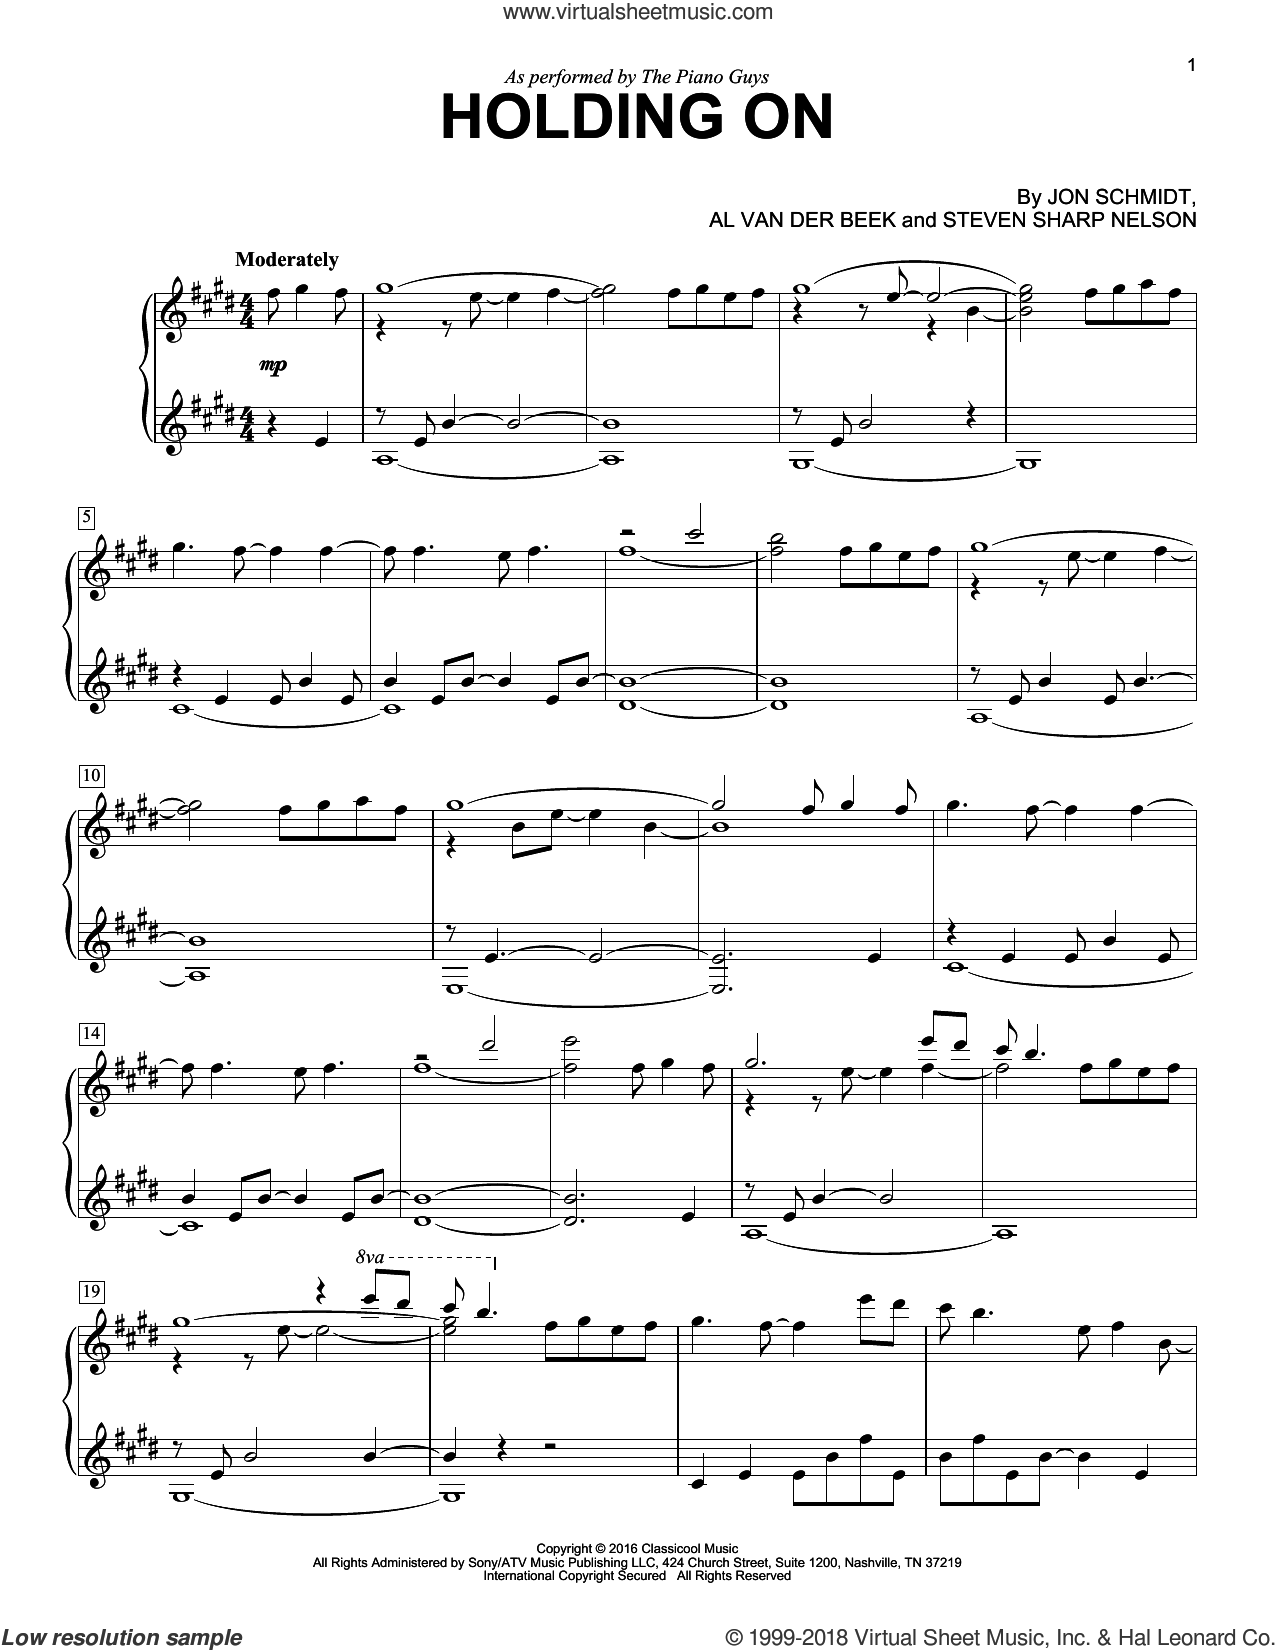 Holding On sheet music for piano solo by The Piano Guys, Al van der Beek, Jon Schmidt and Steven Sharp Nelson, intermediate skill level